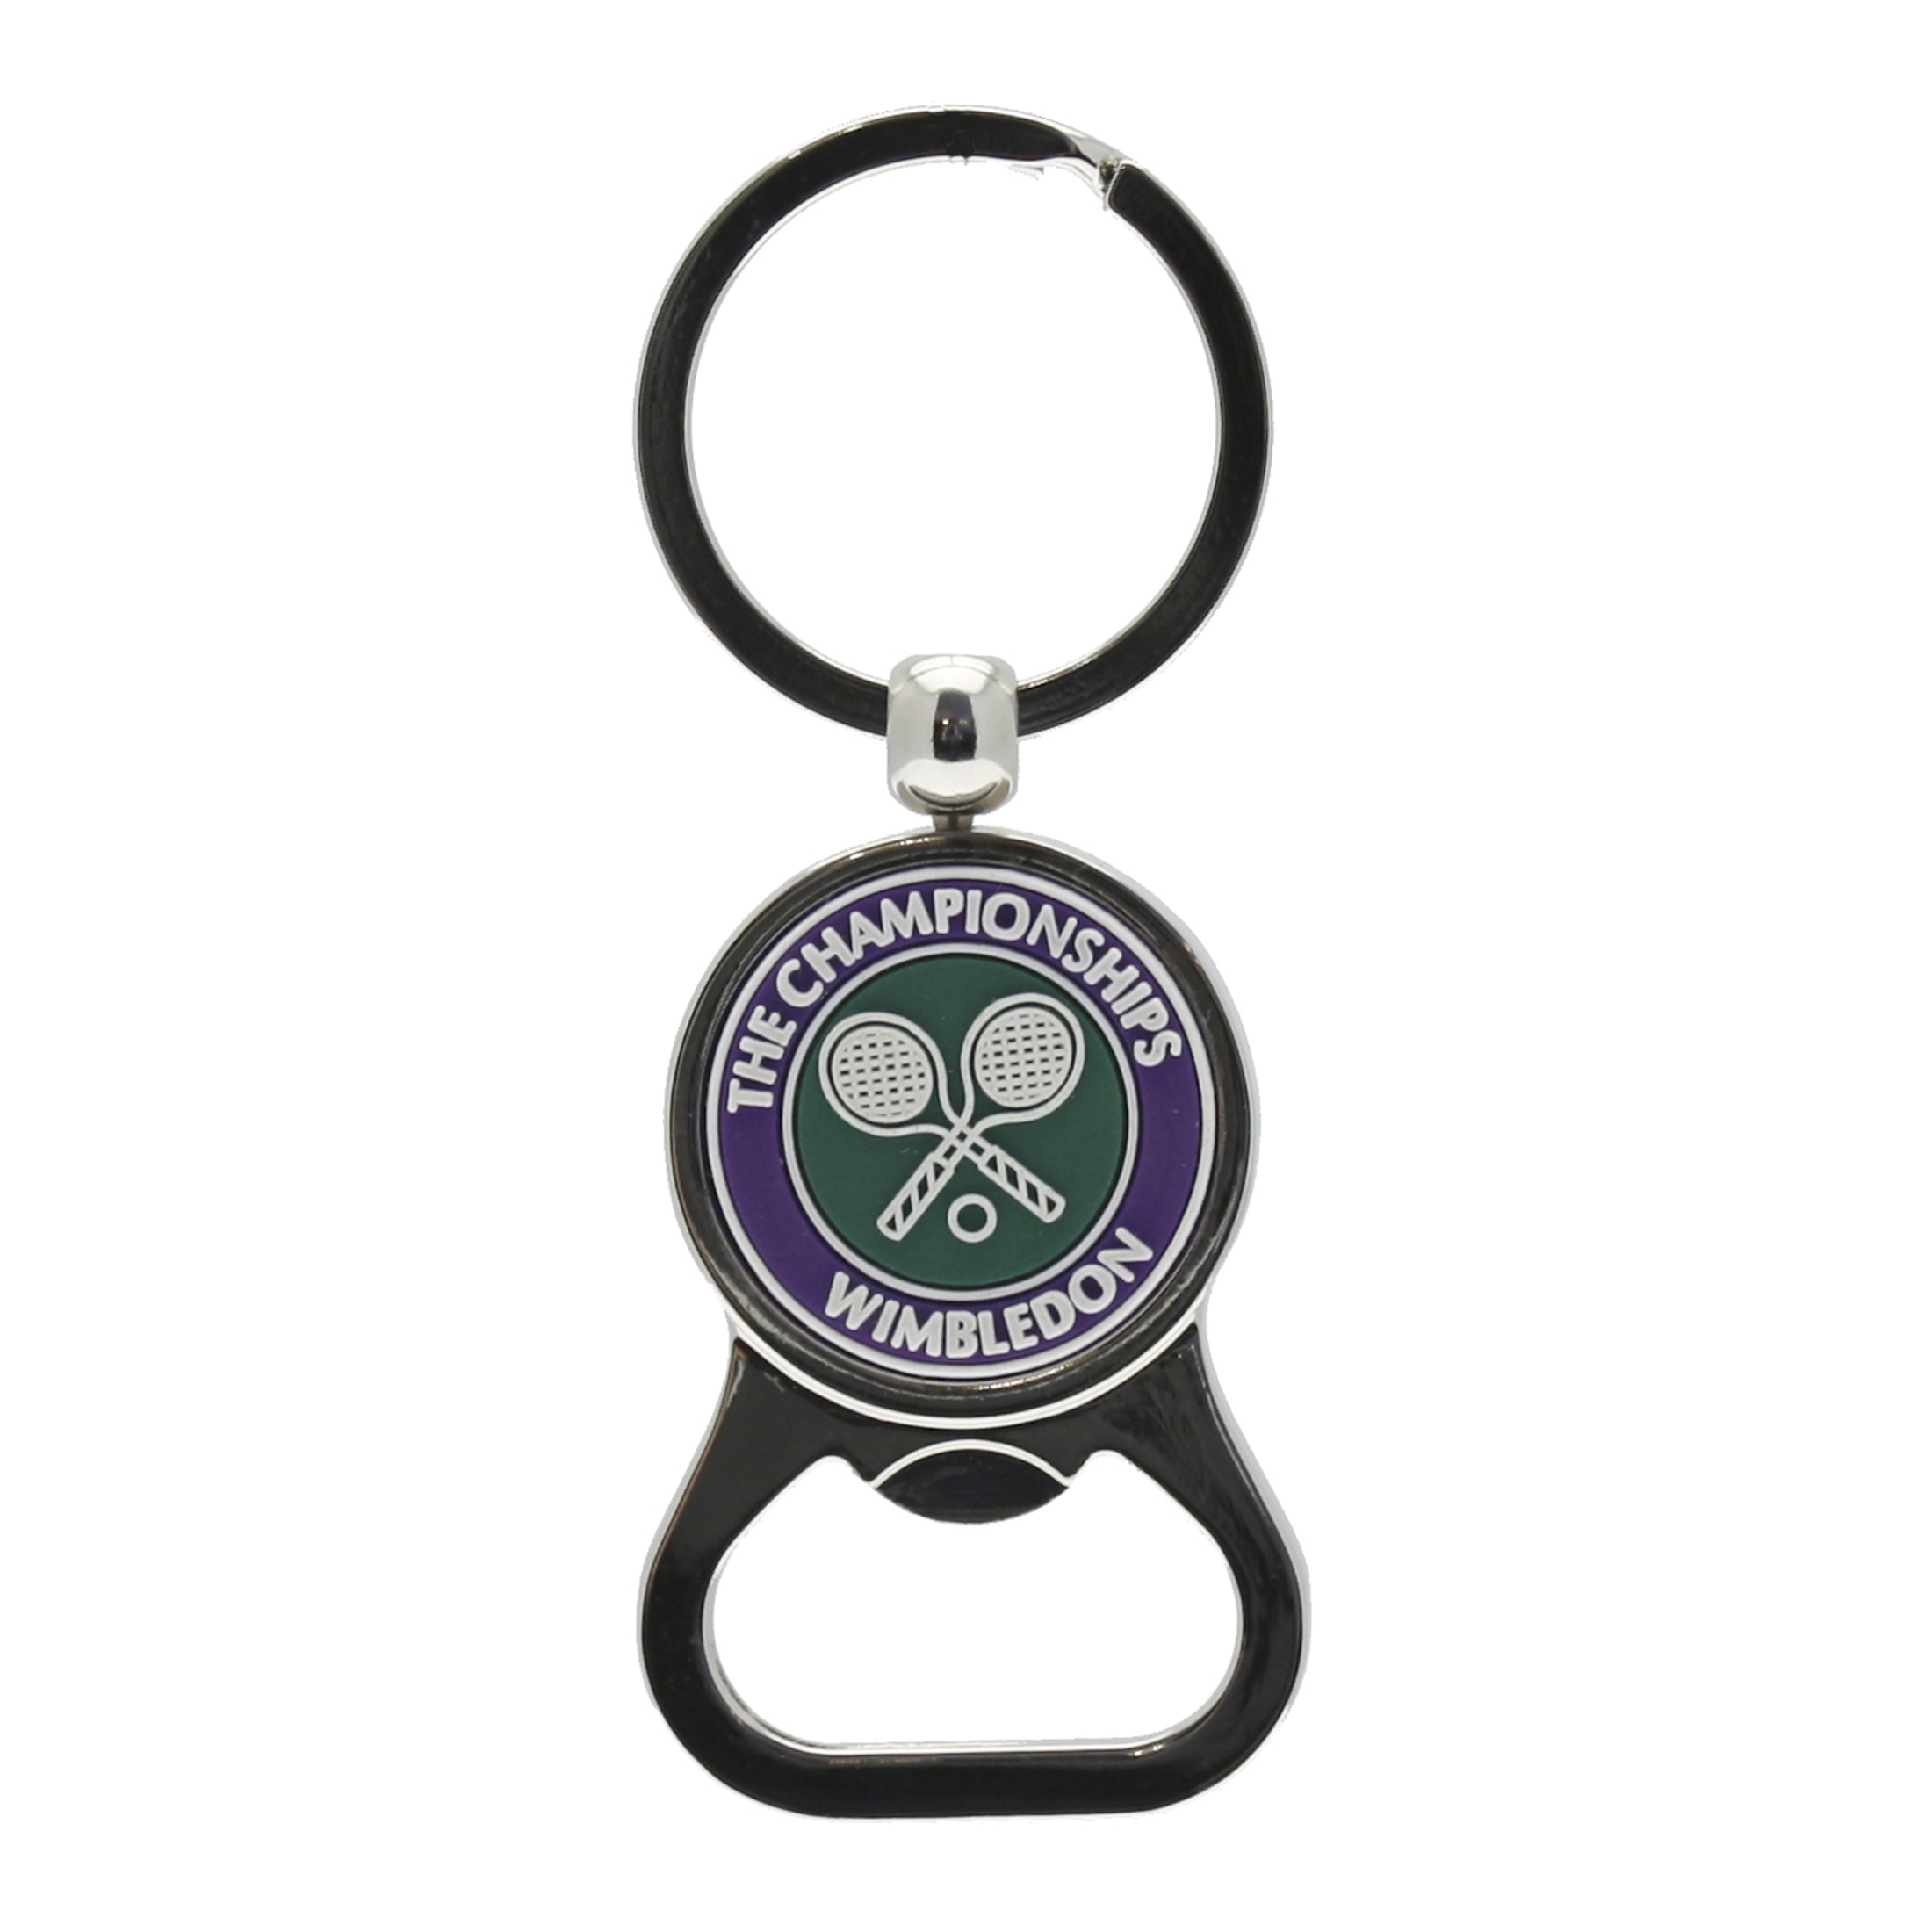 Wimbledon Bottle Opener Key Ring